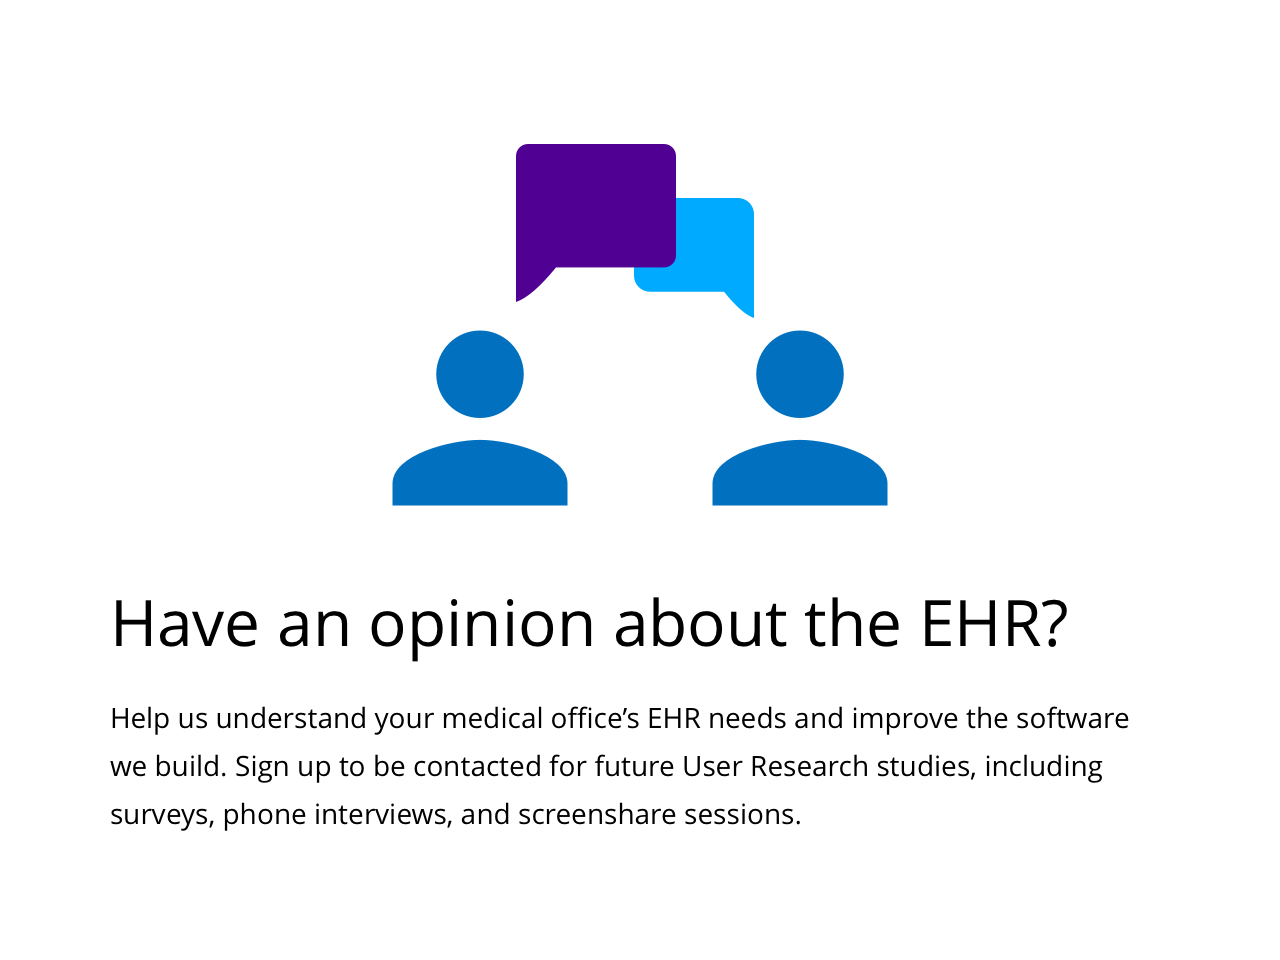 Help us understand your medical office's EHR needs and improve the software we build.  Sign up to be contacted for future User Research studies, including surveys, phone interviews, and screenshare sessions.